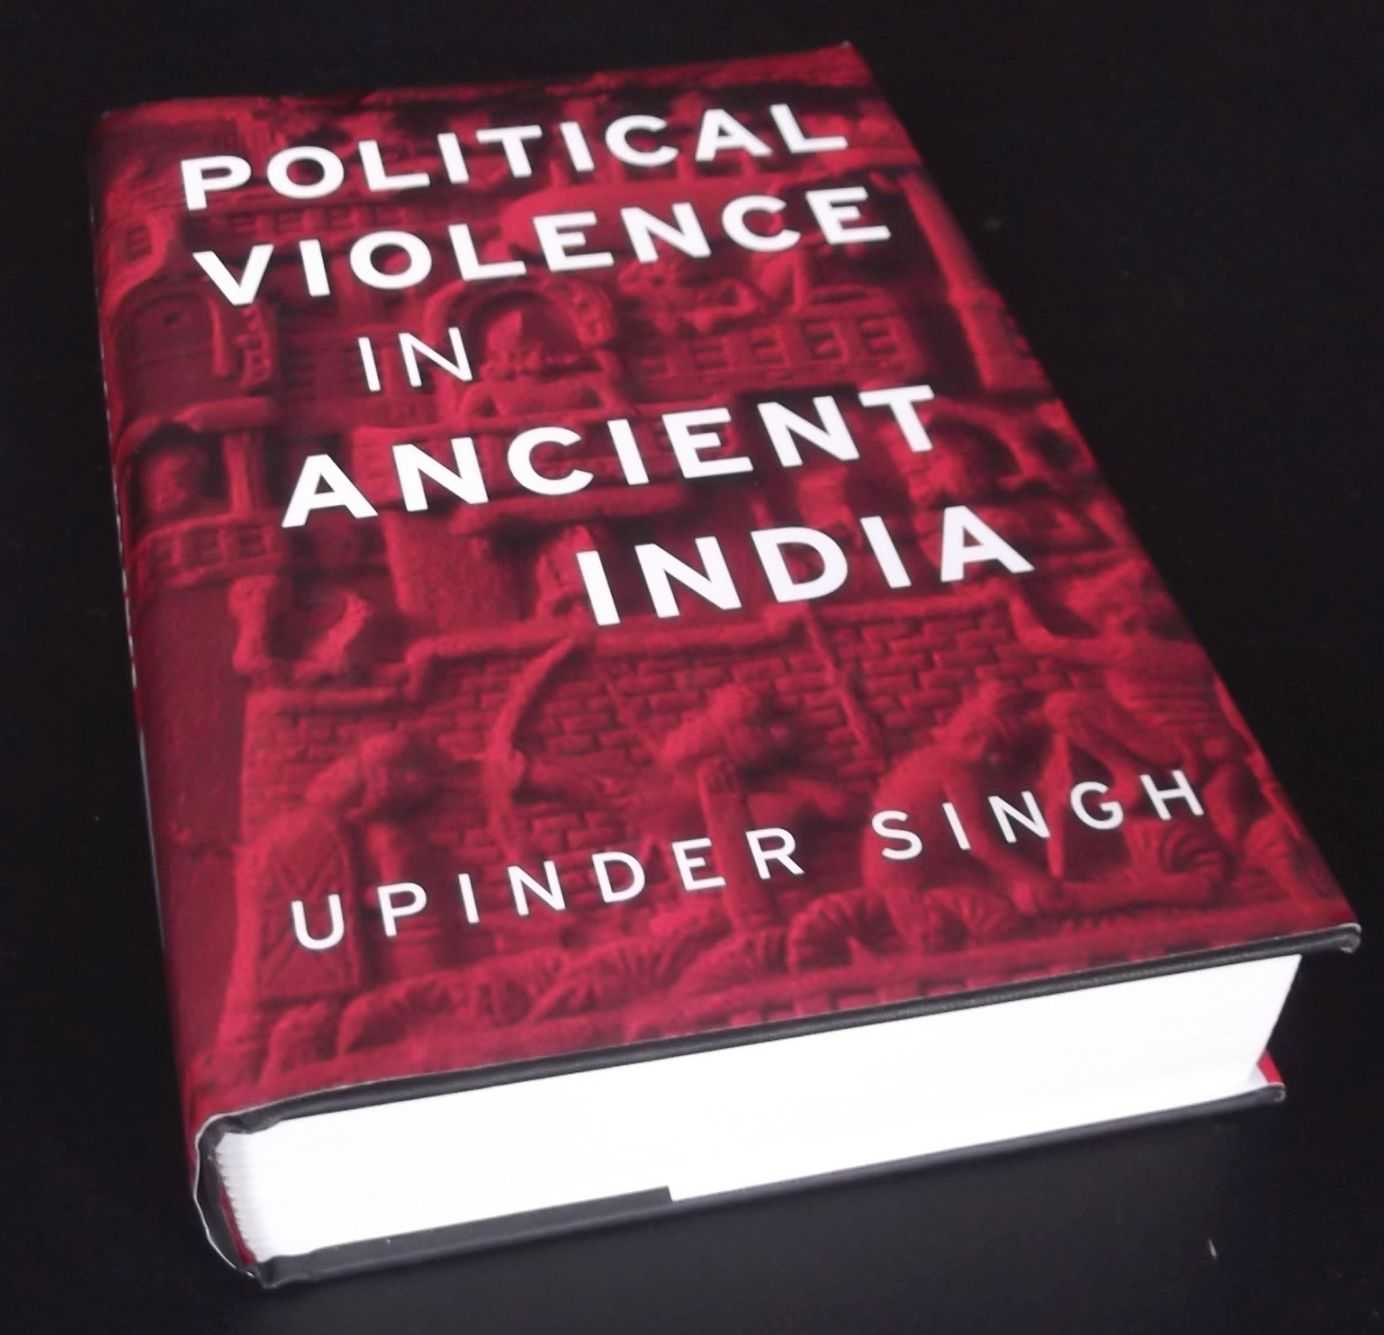 UPINDER SINGH - Political Violence in Ancient India